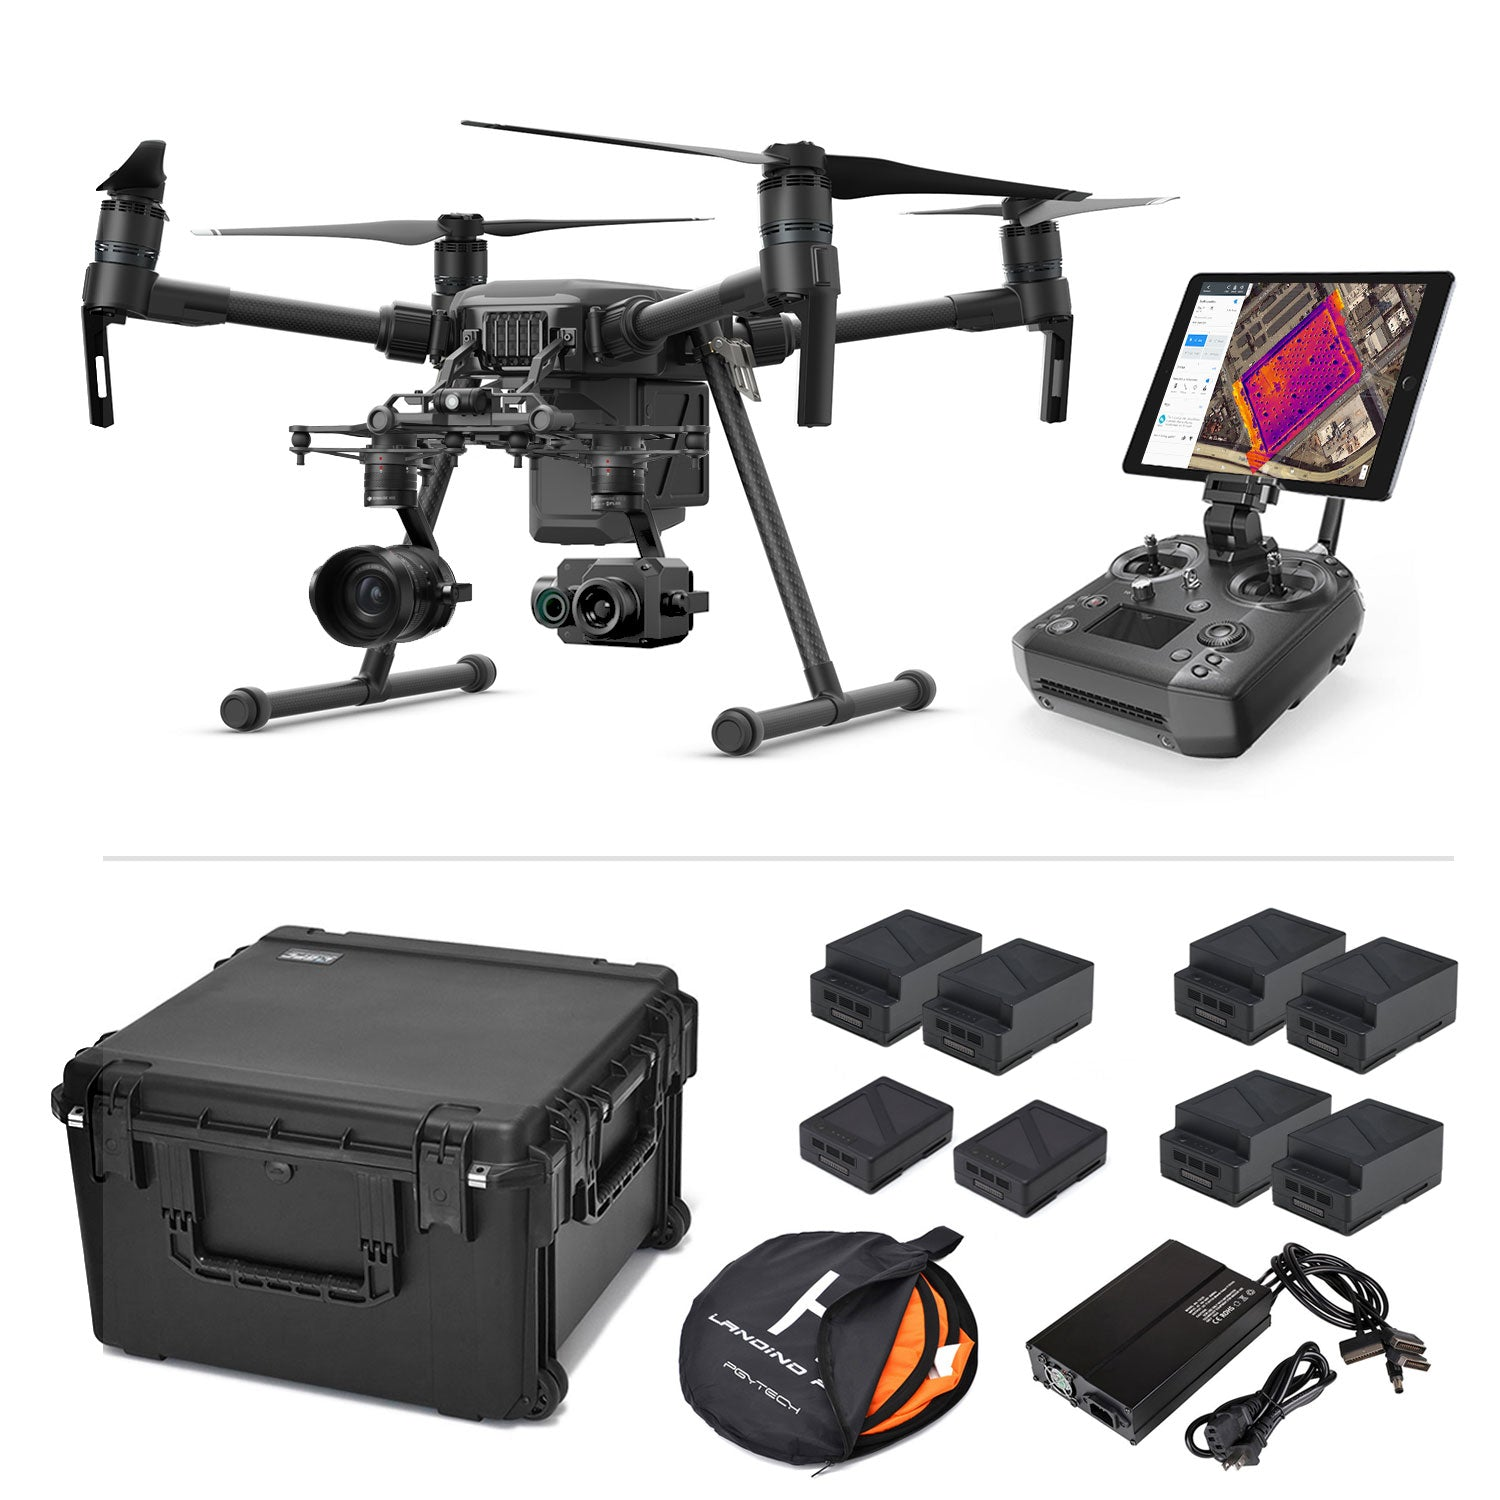 Survey Thermal Package - DJI Matrice 210 with Zenmuse XT2 and X5S